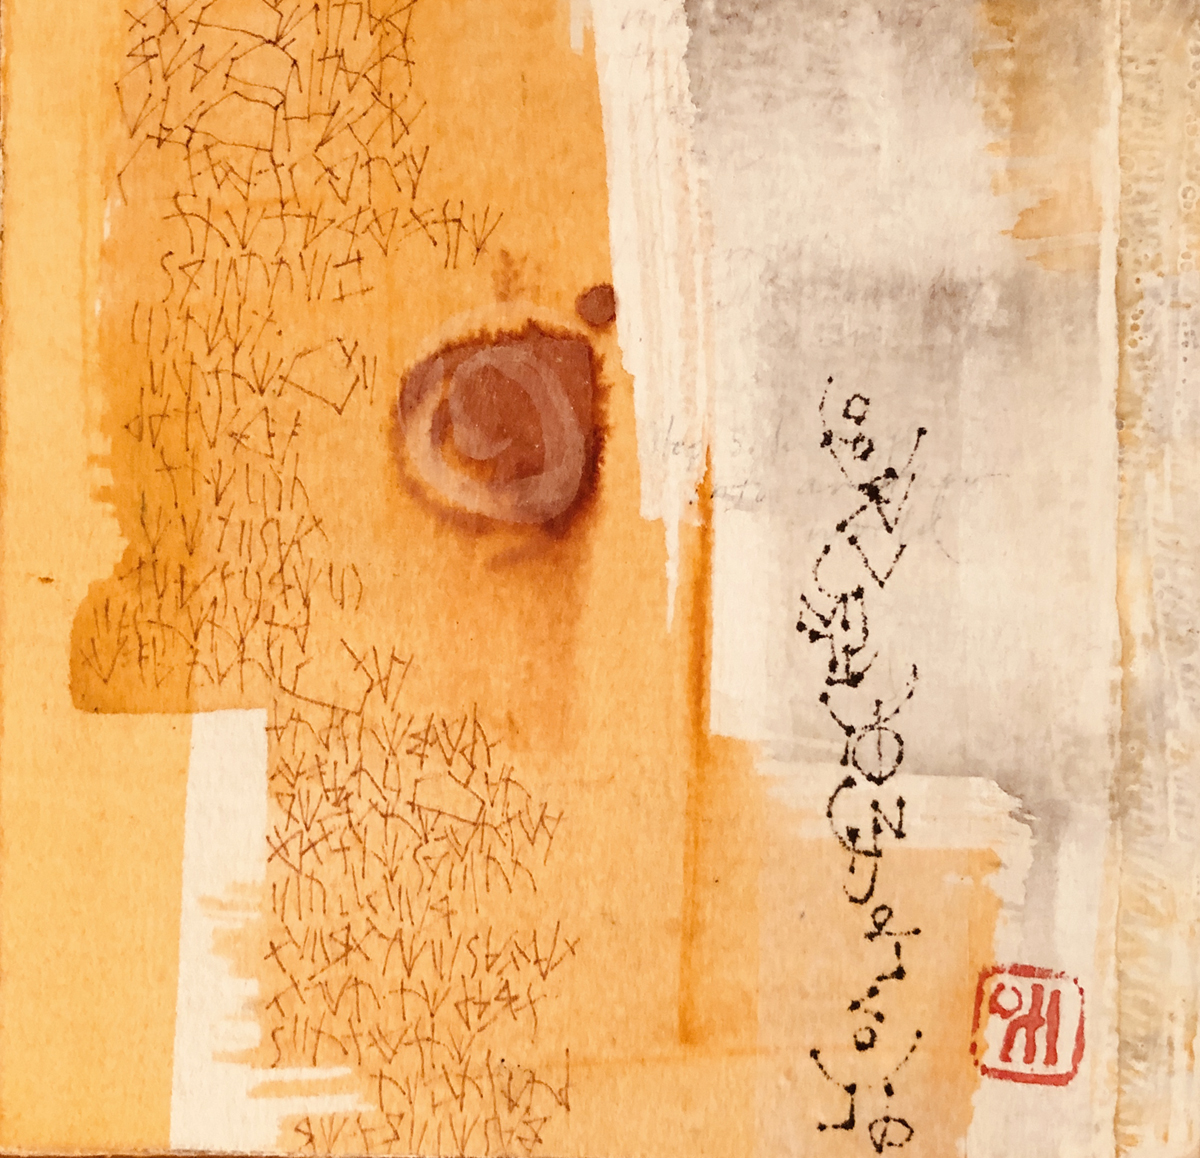 New small paintings;  Dream Series: Intuitive Messages  L Doctor